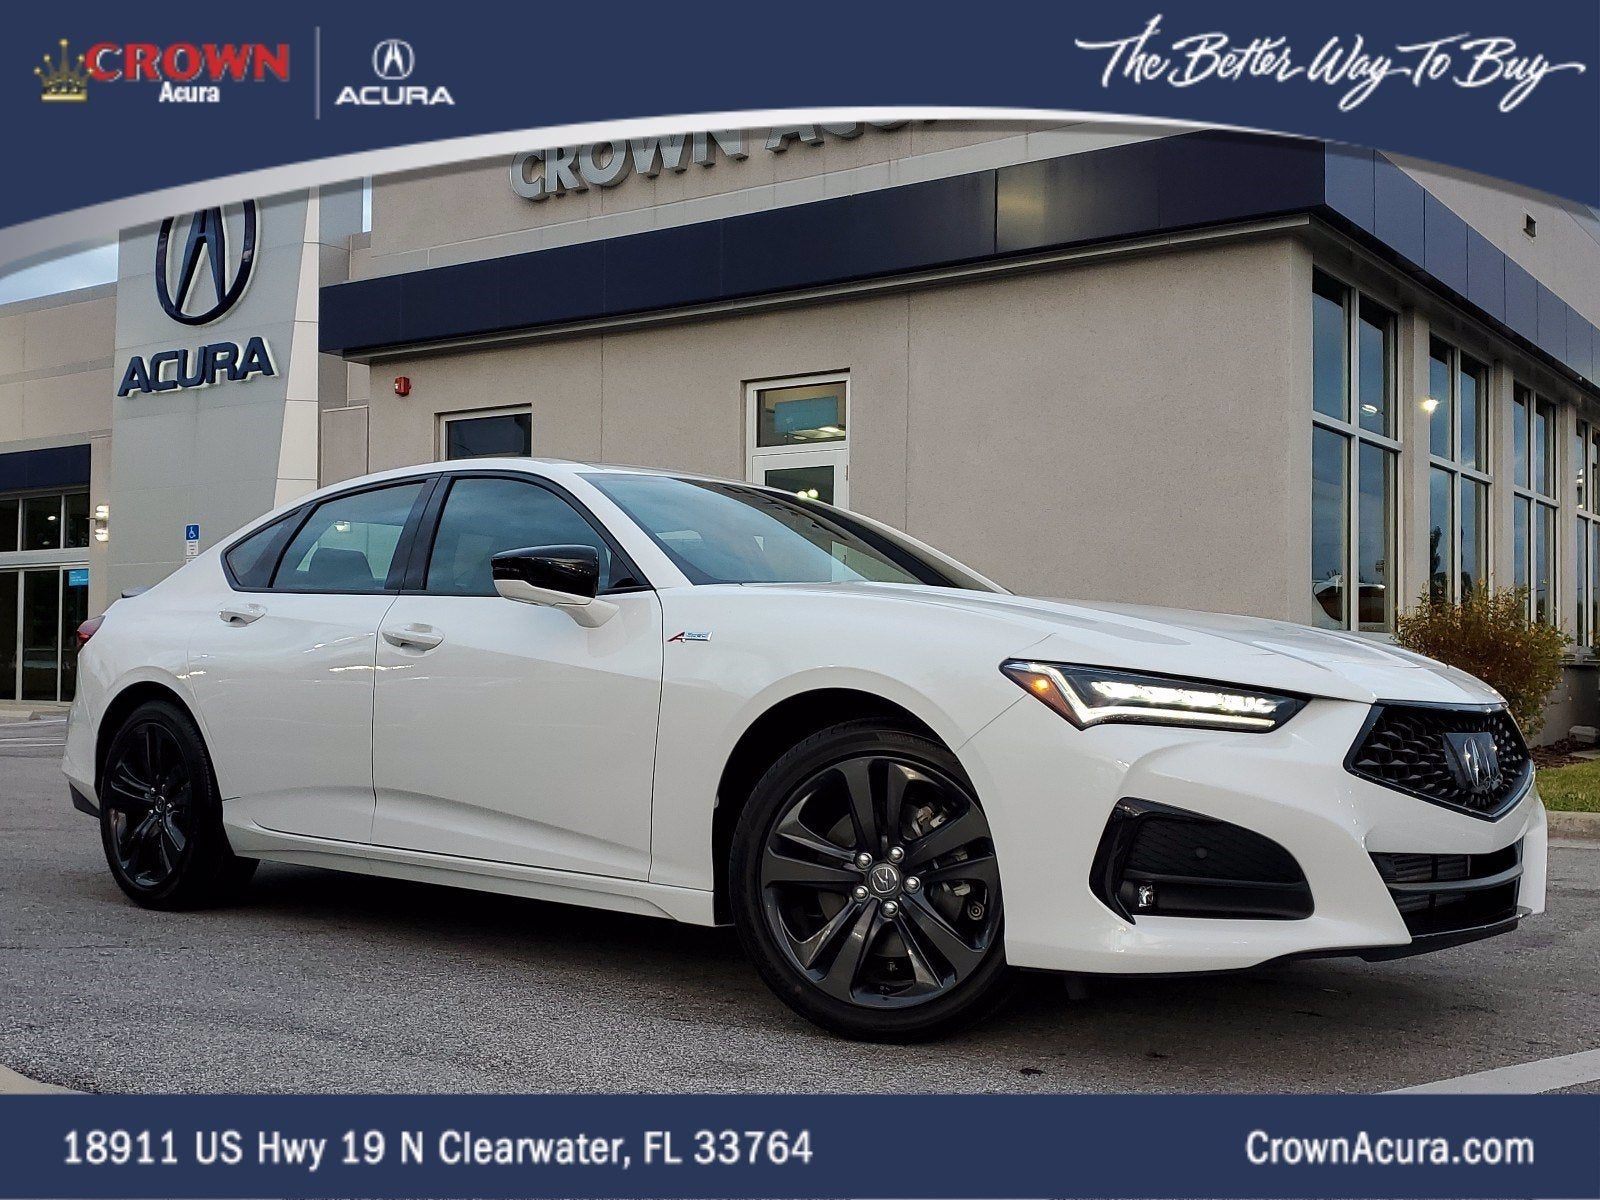 2021 Acura Tlx W A Spec Package Acura Dealer In Tampa Bay Florida New And Used Acura Dealership St Petersburg Largo Pinellas Park Florida